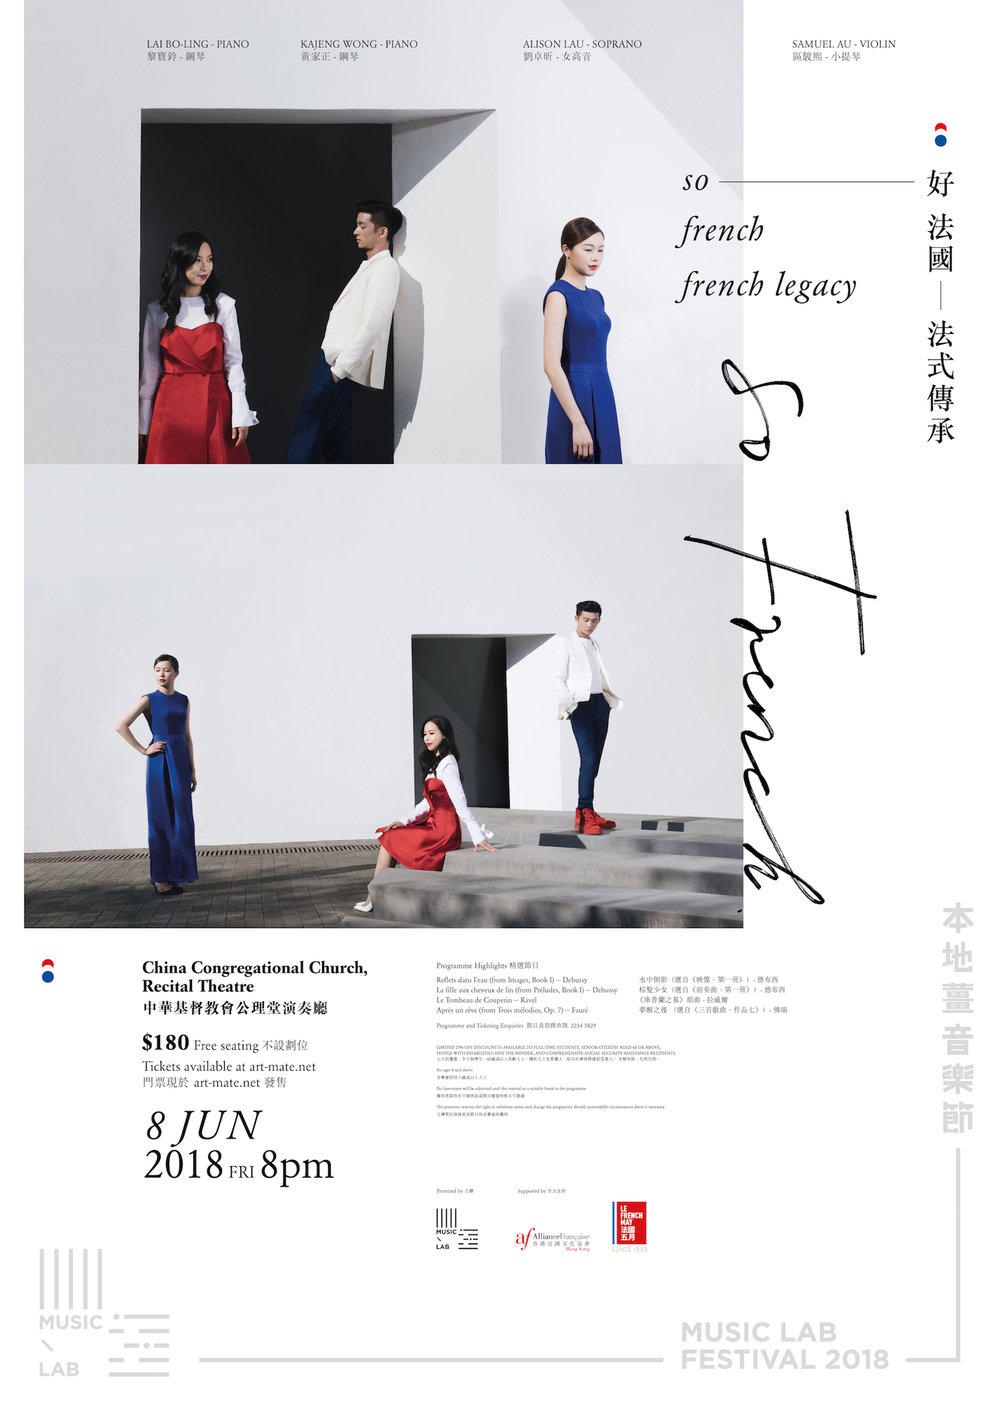 So French - French Legacy - Genre: Chamber MusicDate: 8 June 2018 | 8PMVenue: China Congregational Church, Recital Theatre (6F, 119 Leighton Road, Causeway Bay, Hong Kong)Musicians: Samuel AU, LAI Bo-ling, Alison LAU, KaJeng WongSo French - French Legacy is about the heritage of French Art. From the baroque master Francois Couperin to the age of Faure, Debussy, Ravel, Chausson besides the literary inspiration from the poet Leconte de Lisle, the French tradition influenced as far as the American impressionistic composer Charles Griffes, as well as 20th century master Olivier Messiaen, who taught the legendary Japanese Toru Takemitsu.